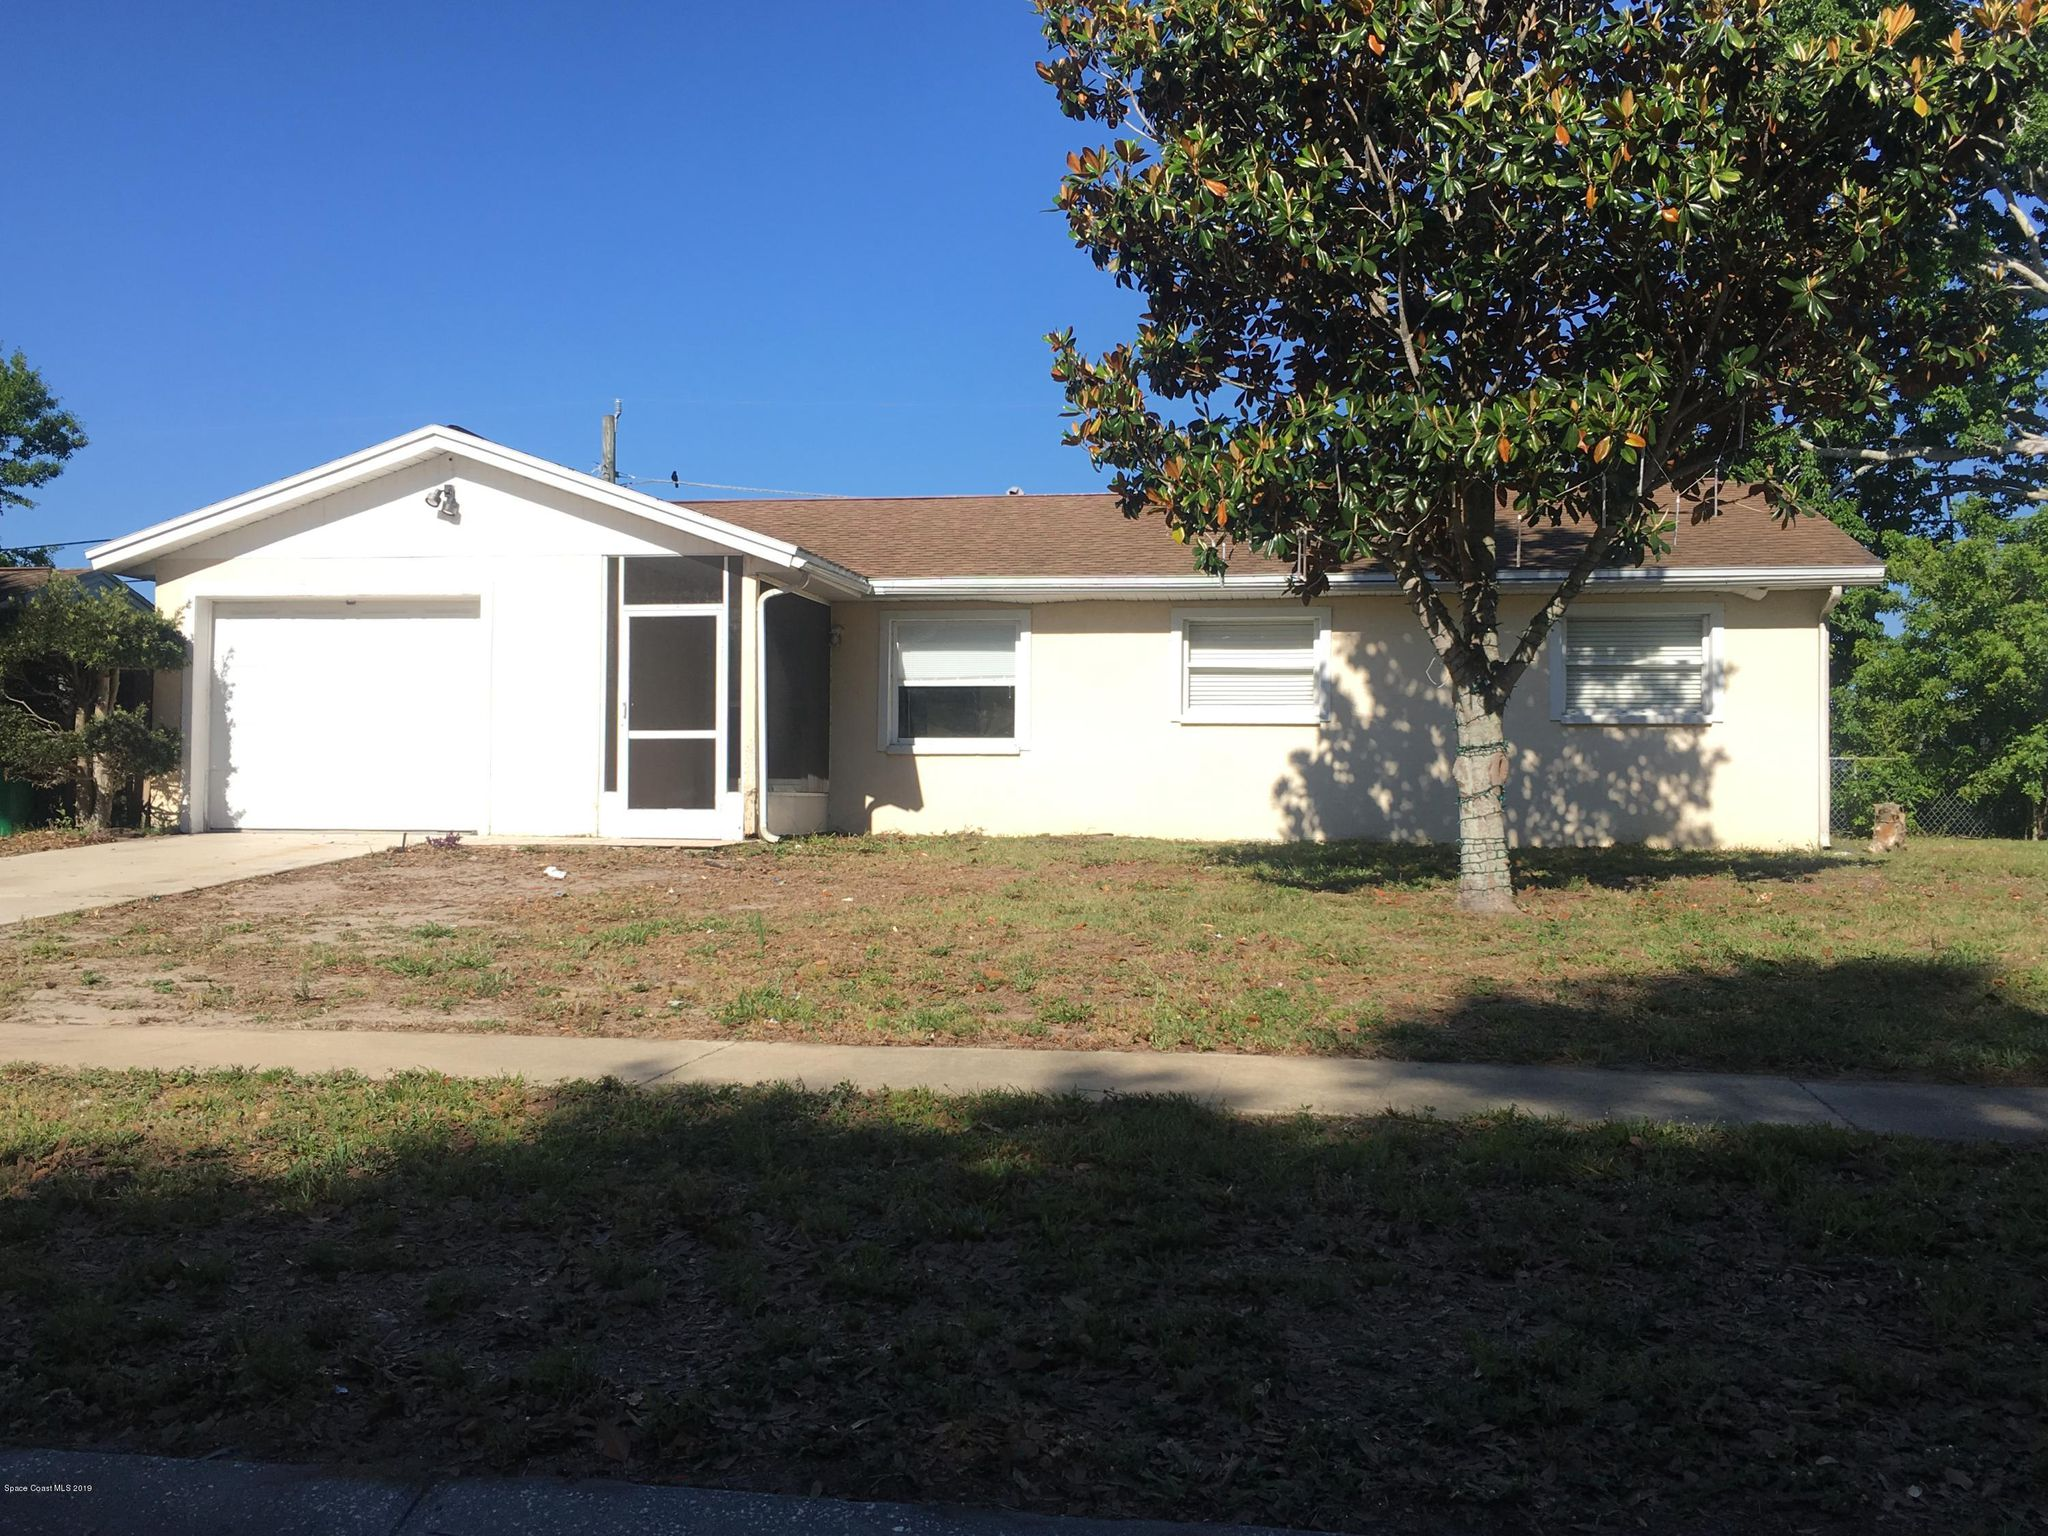 546 Louvre Dr Melbourne FL 32935   3 Bed 2 Bath Single Family 2048x1536